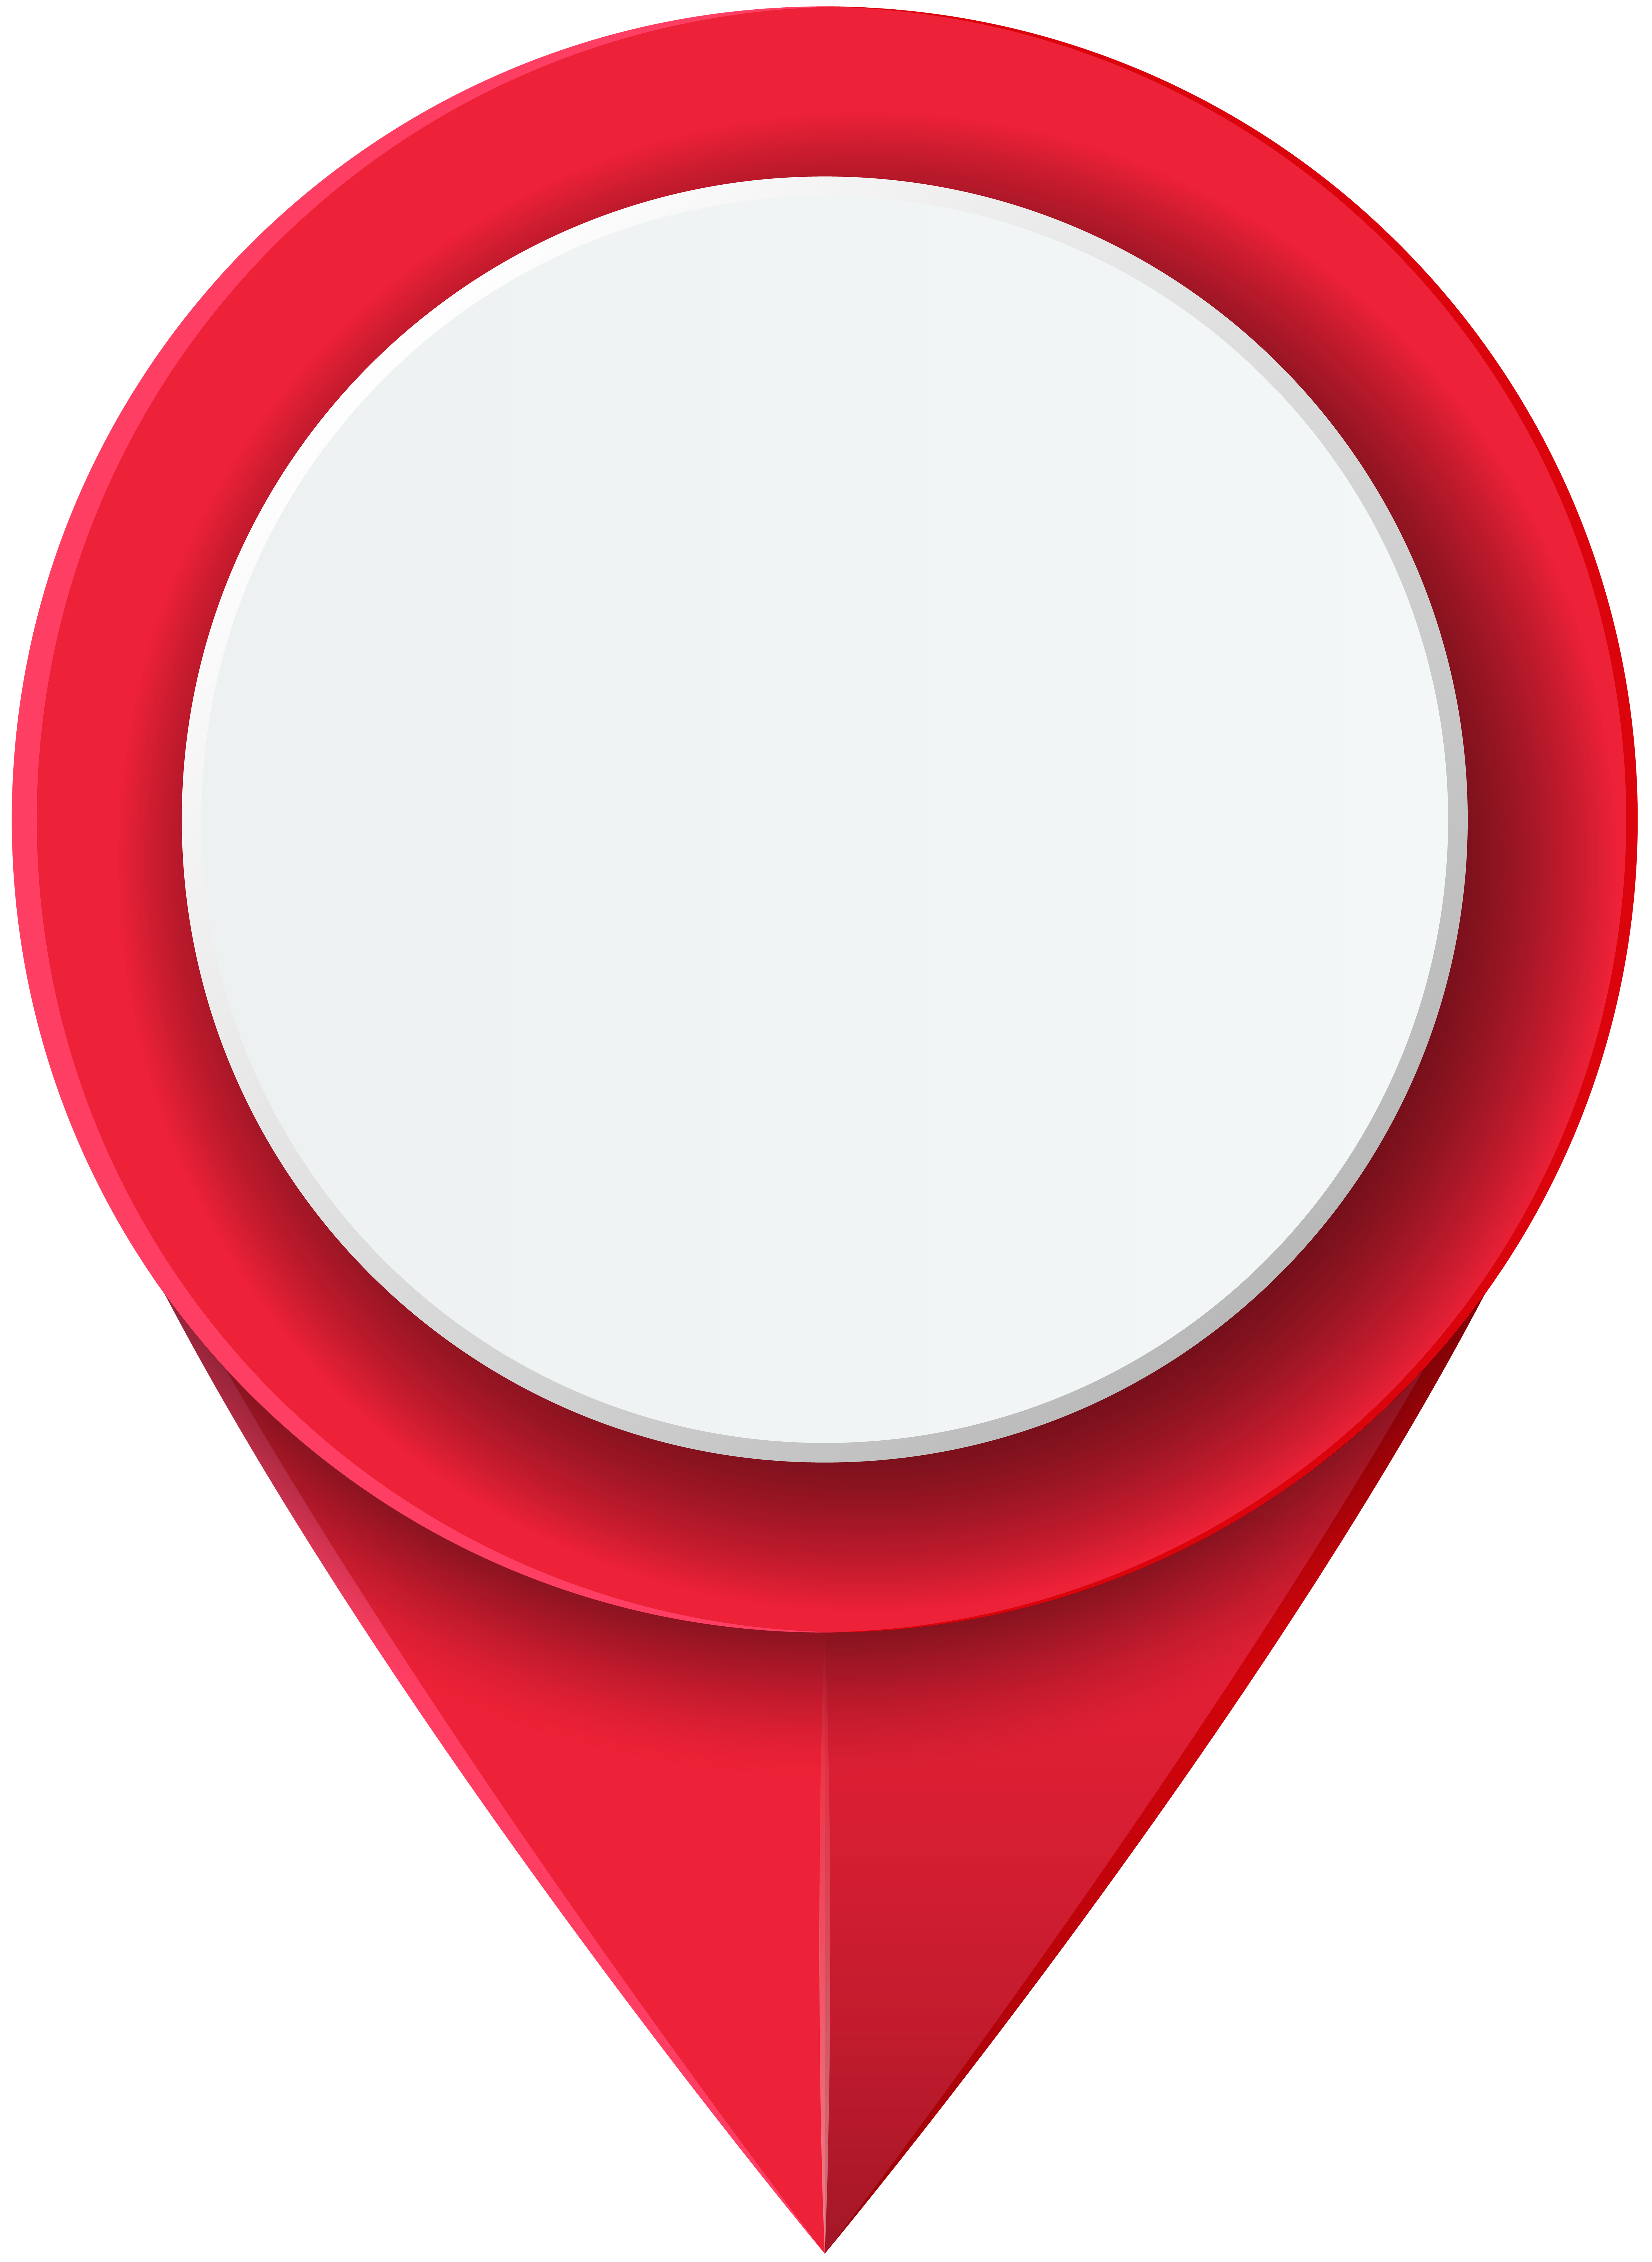 Location Tag PNG Clip Art Image.